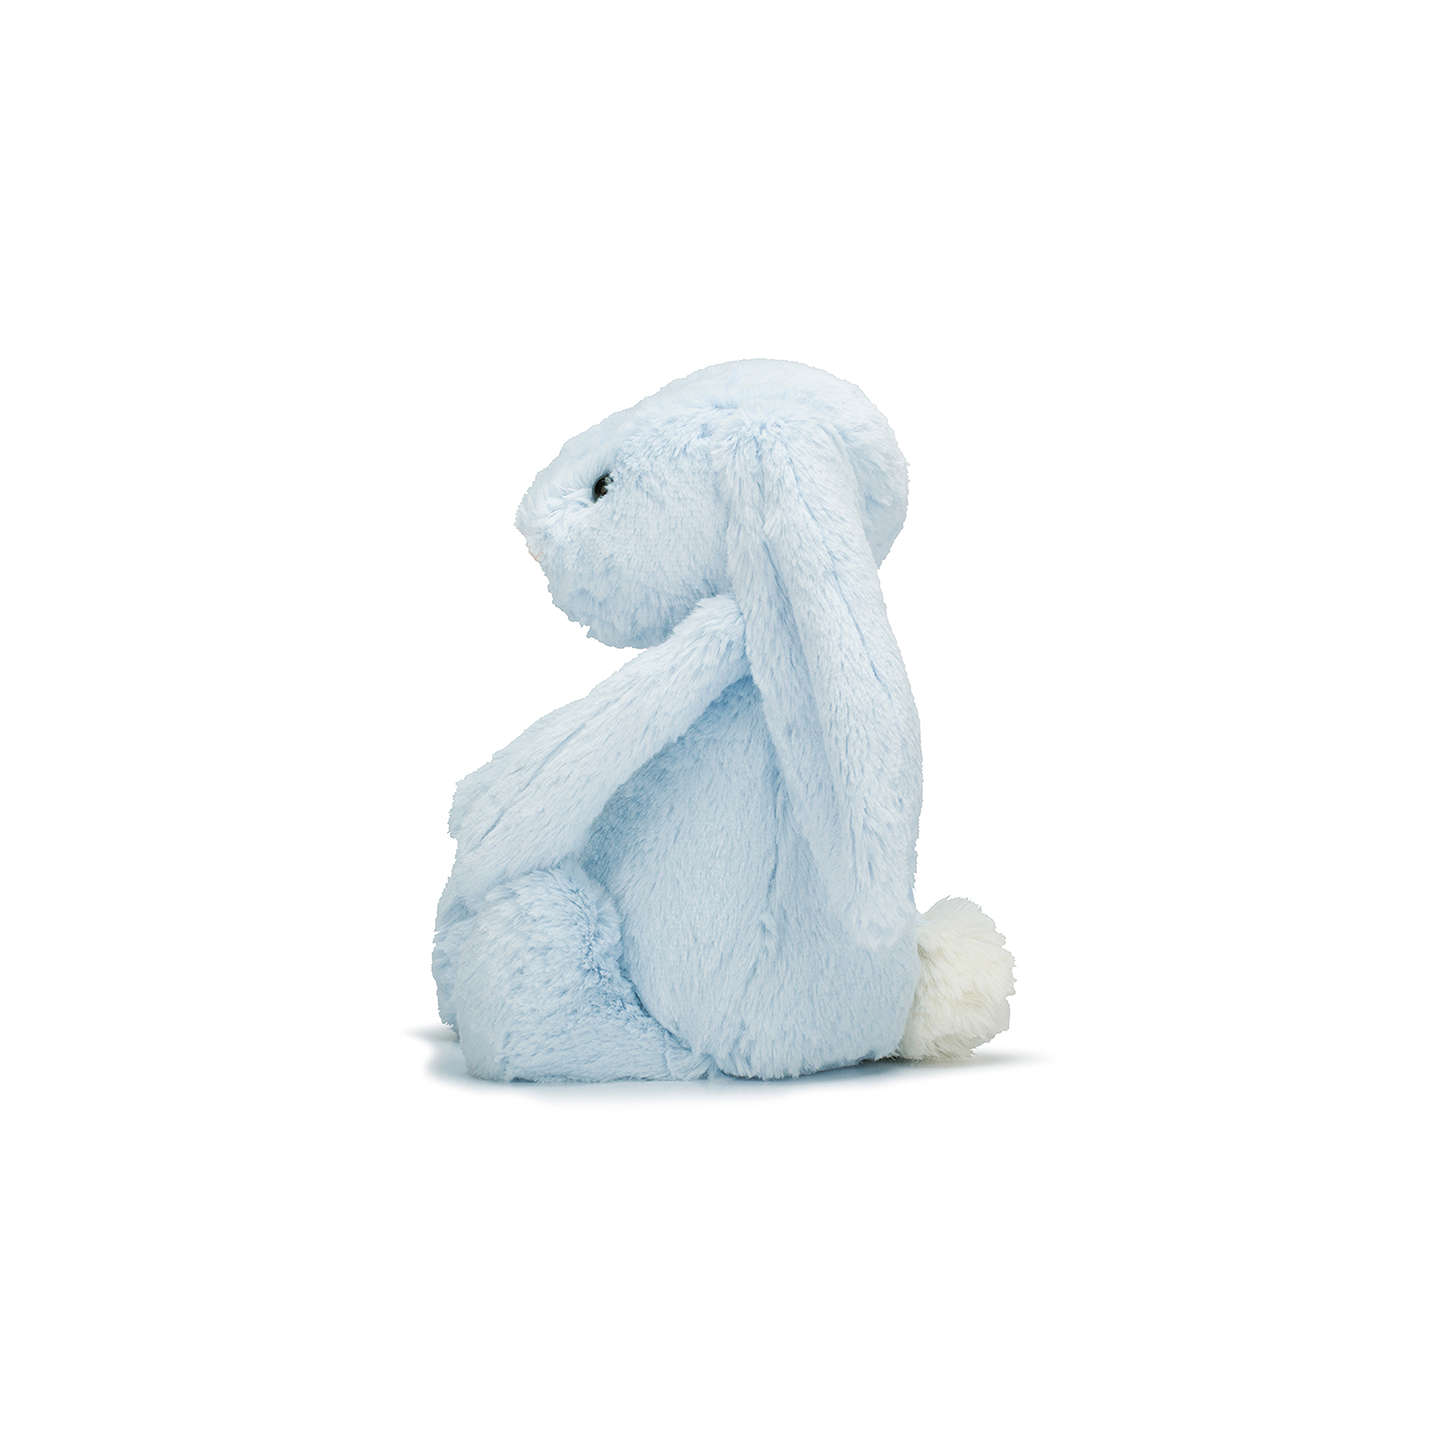 BuyJellycat Bashful Bunny Soft Toy, Medium, Blue Online at johnlewis.com